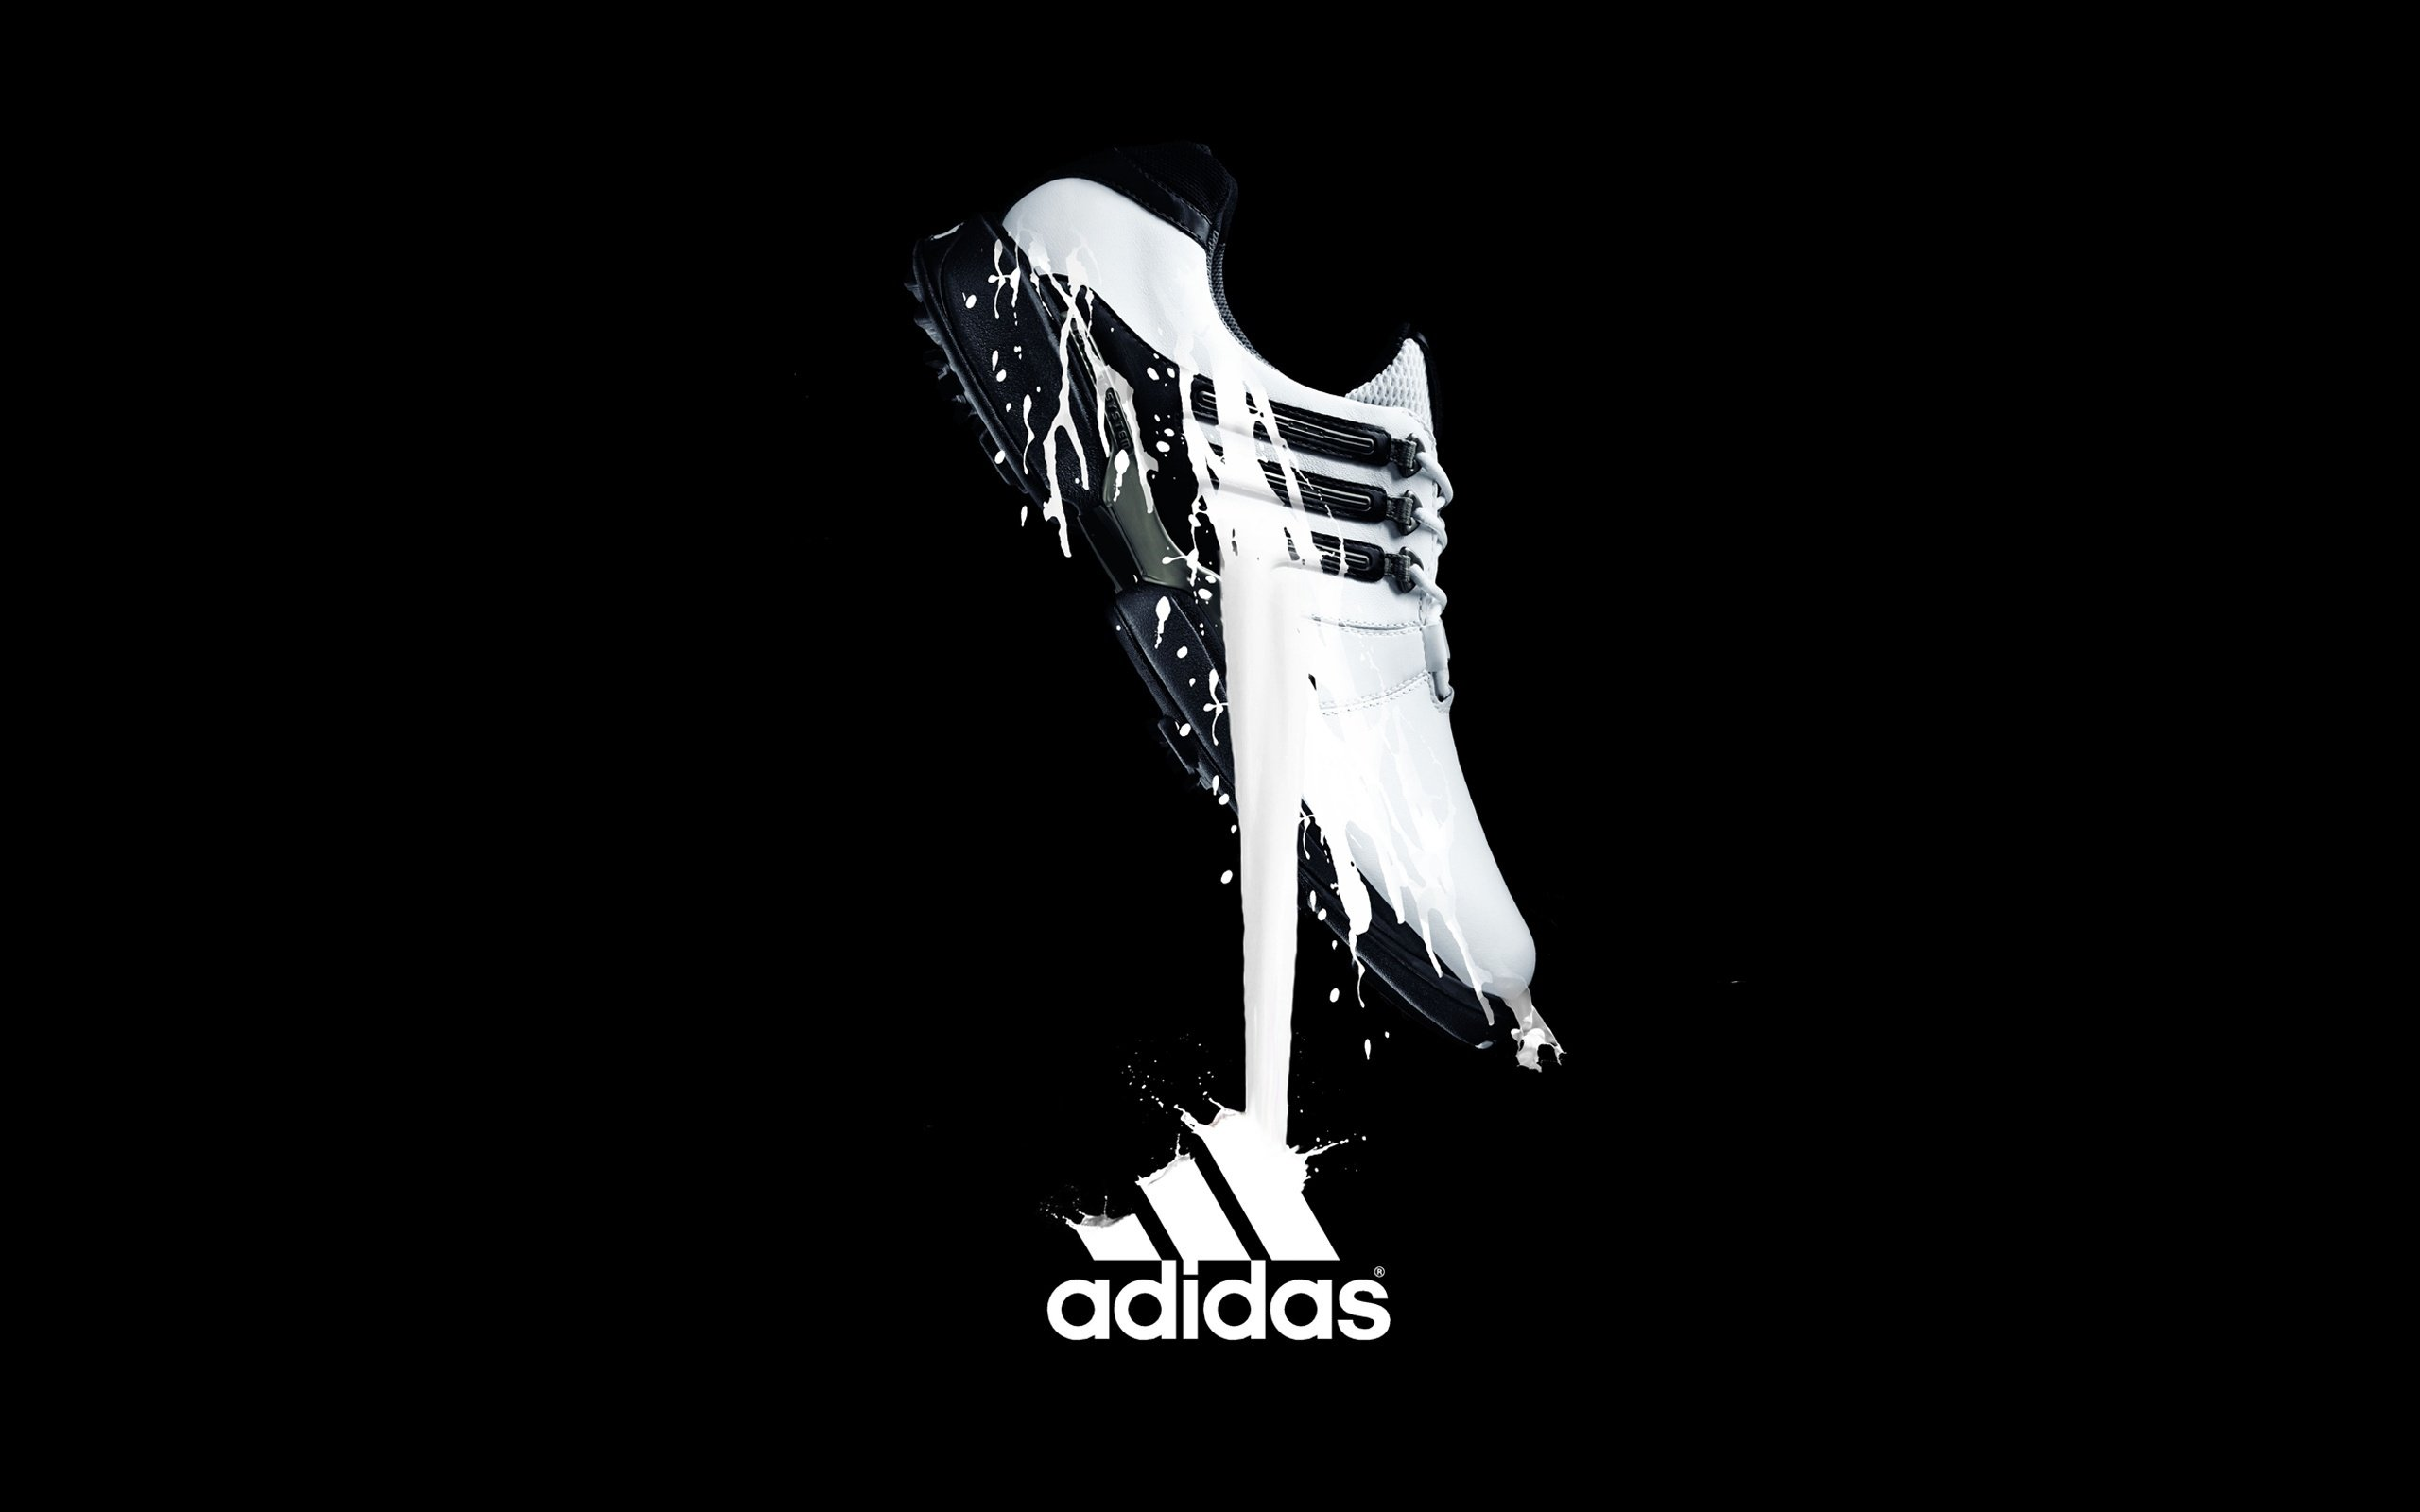 Adidas Wallpapers HD 2560x1600